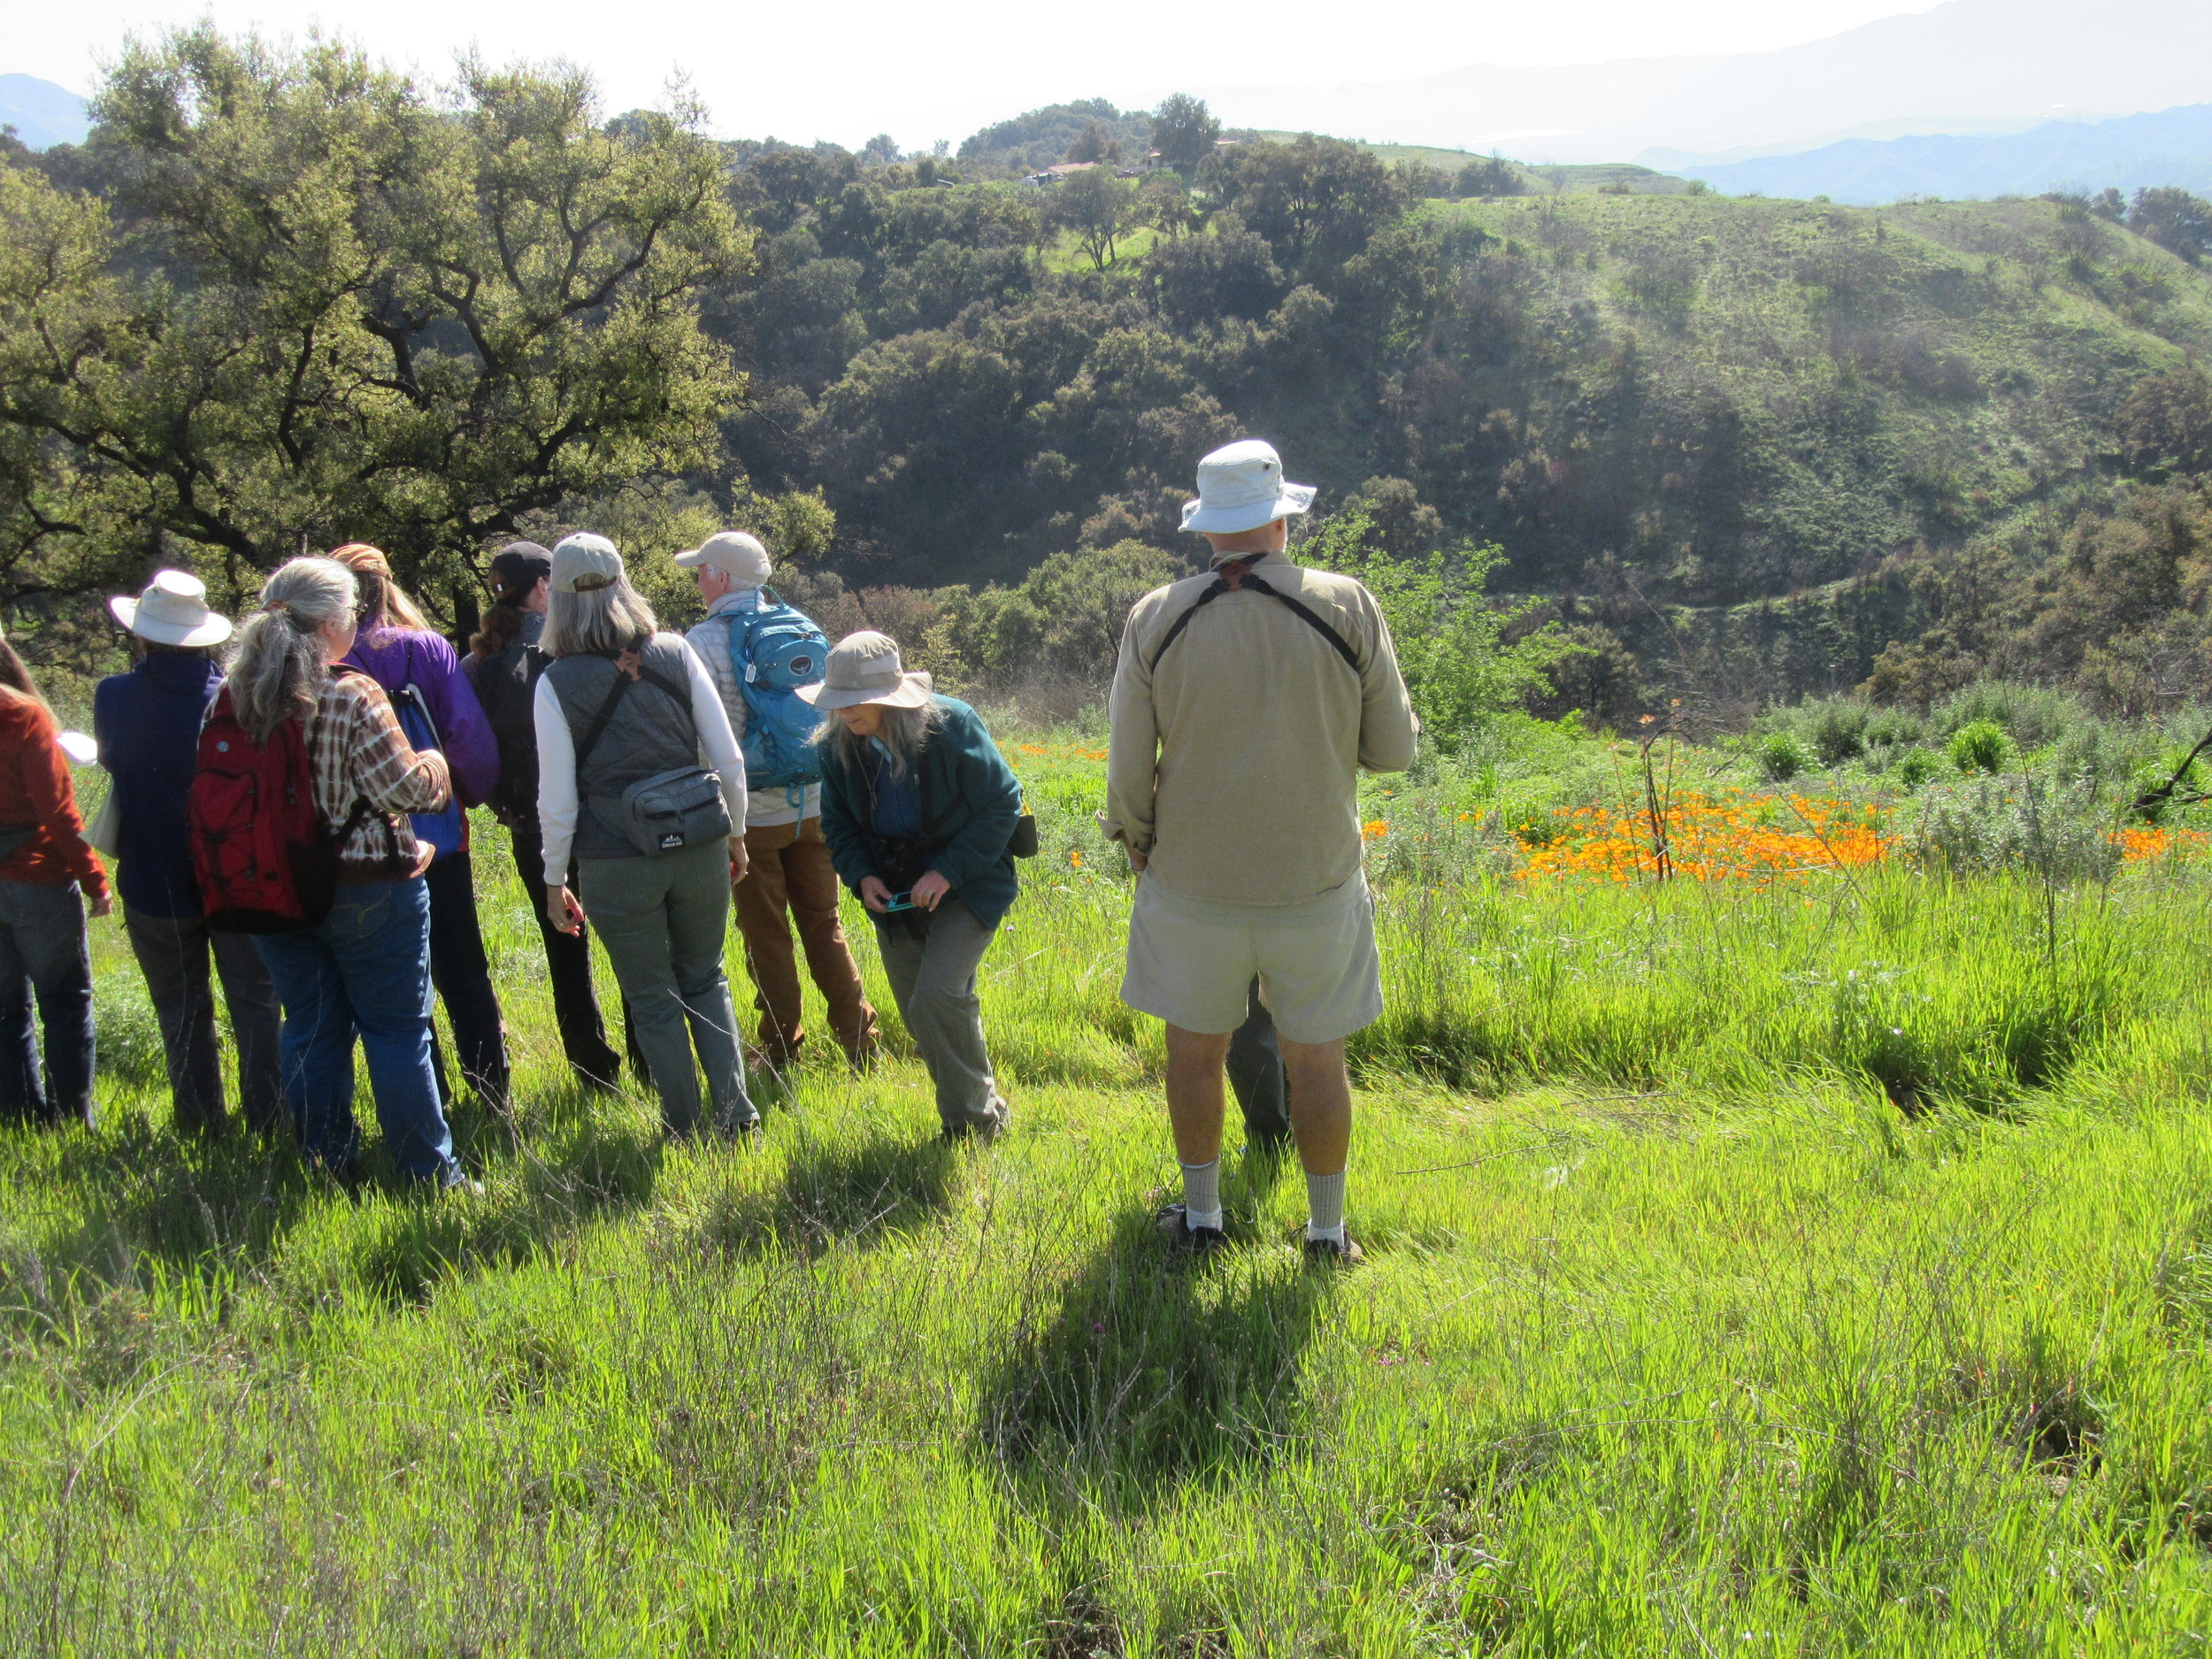 MEMBERS and guests of the Channel Islands chapter of the California Native Plant Society on Sunday, March 24, 2019, view the native plants and flowers at Meher Mount. (Photo: Sam Ervin)